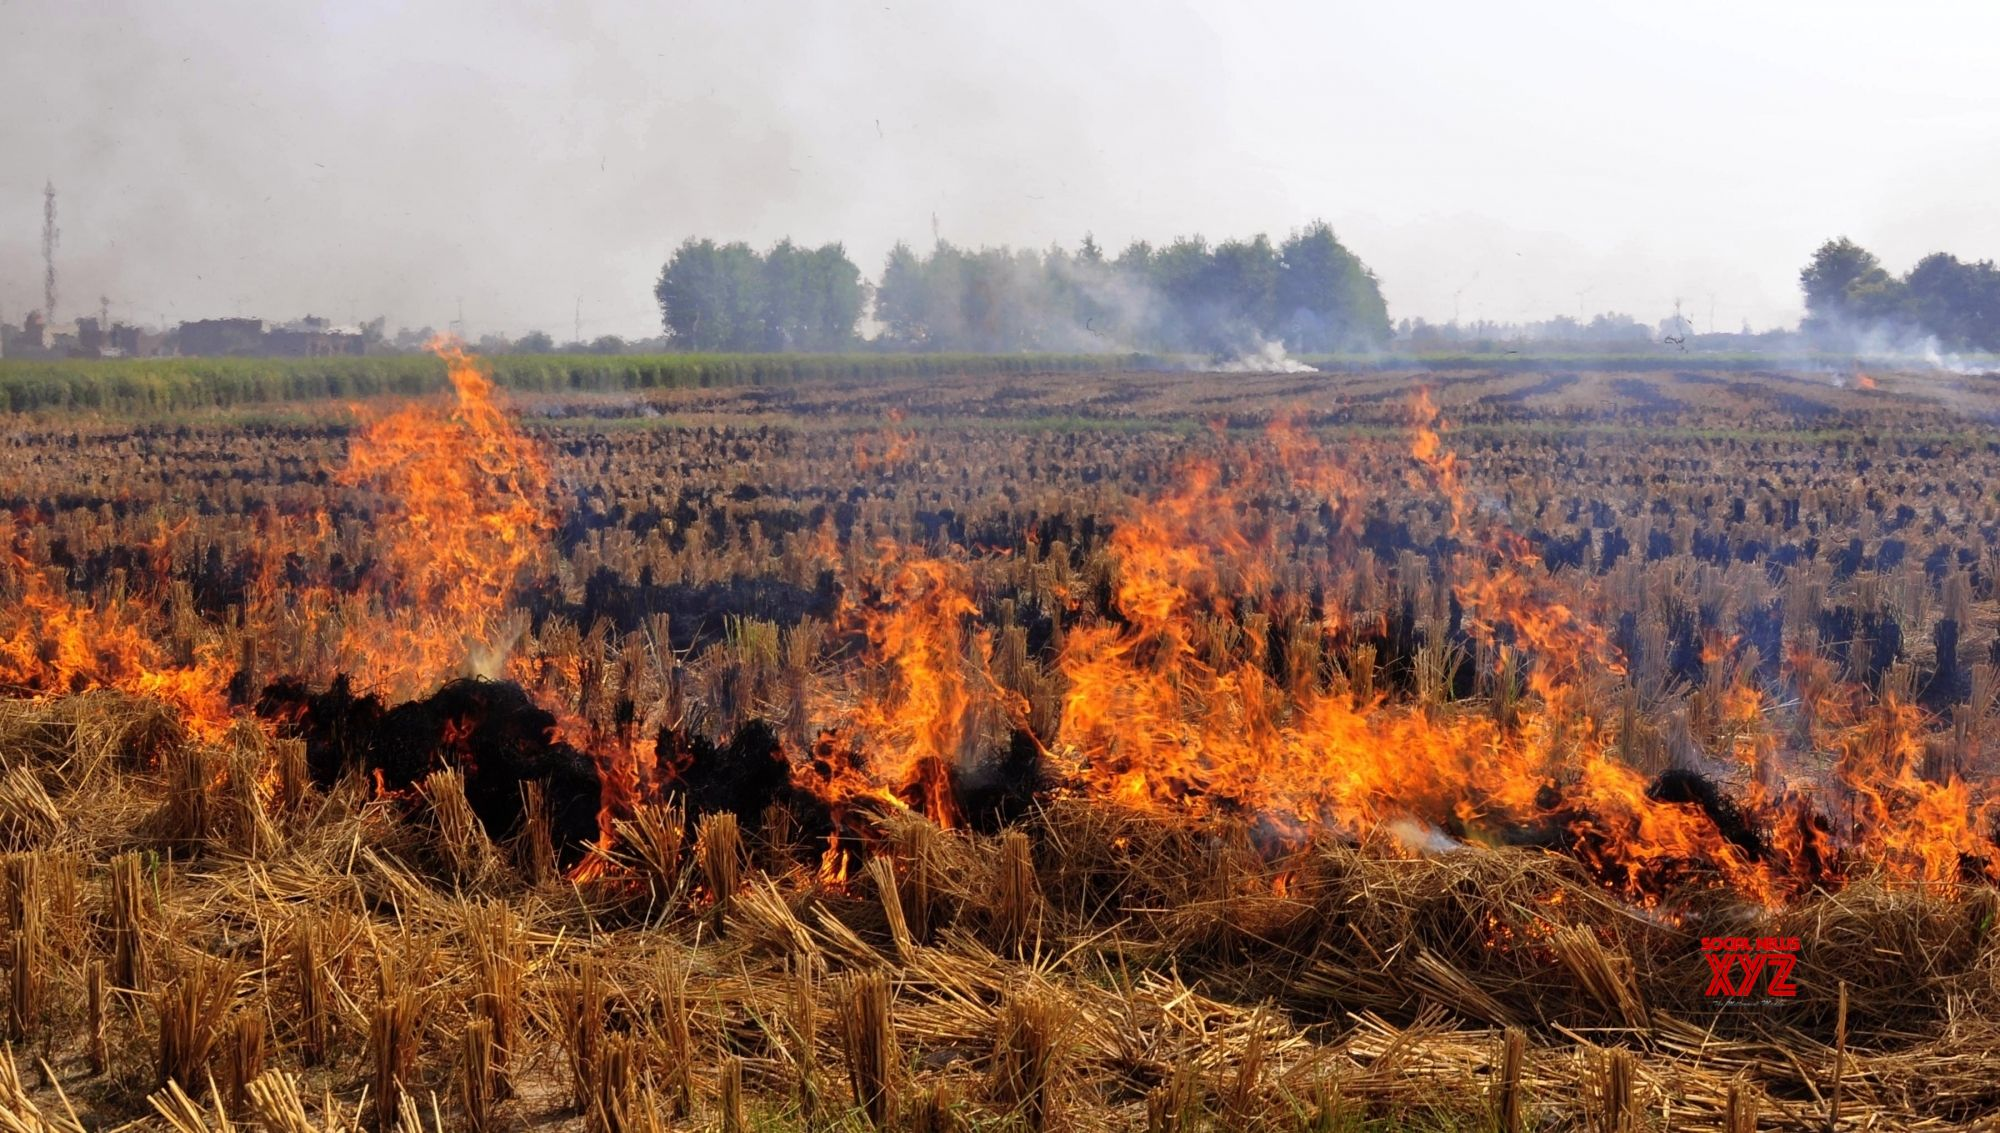 Punjab, the epicentre of crop burning fires, sees low pollution levels